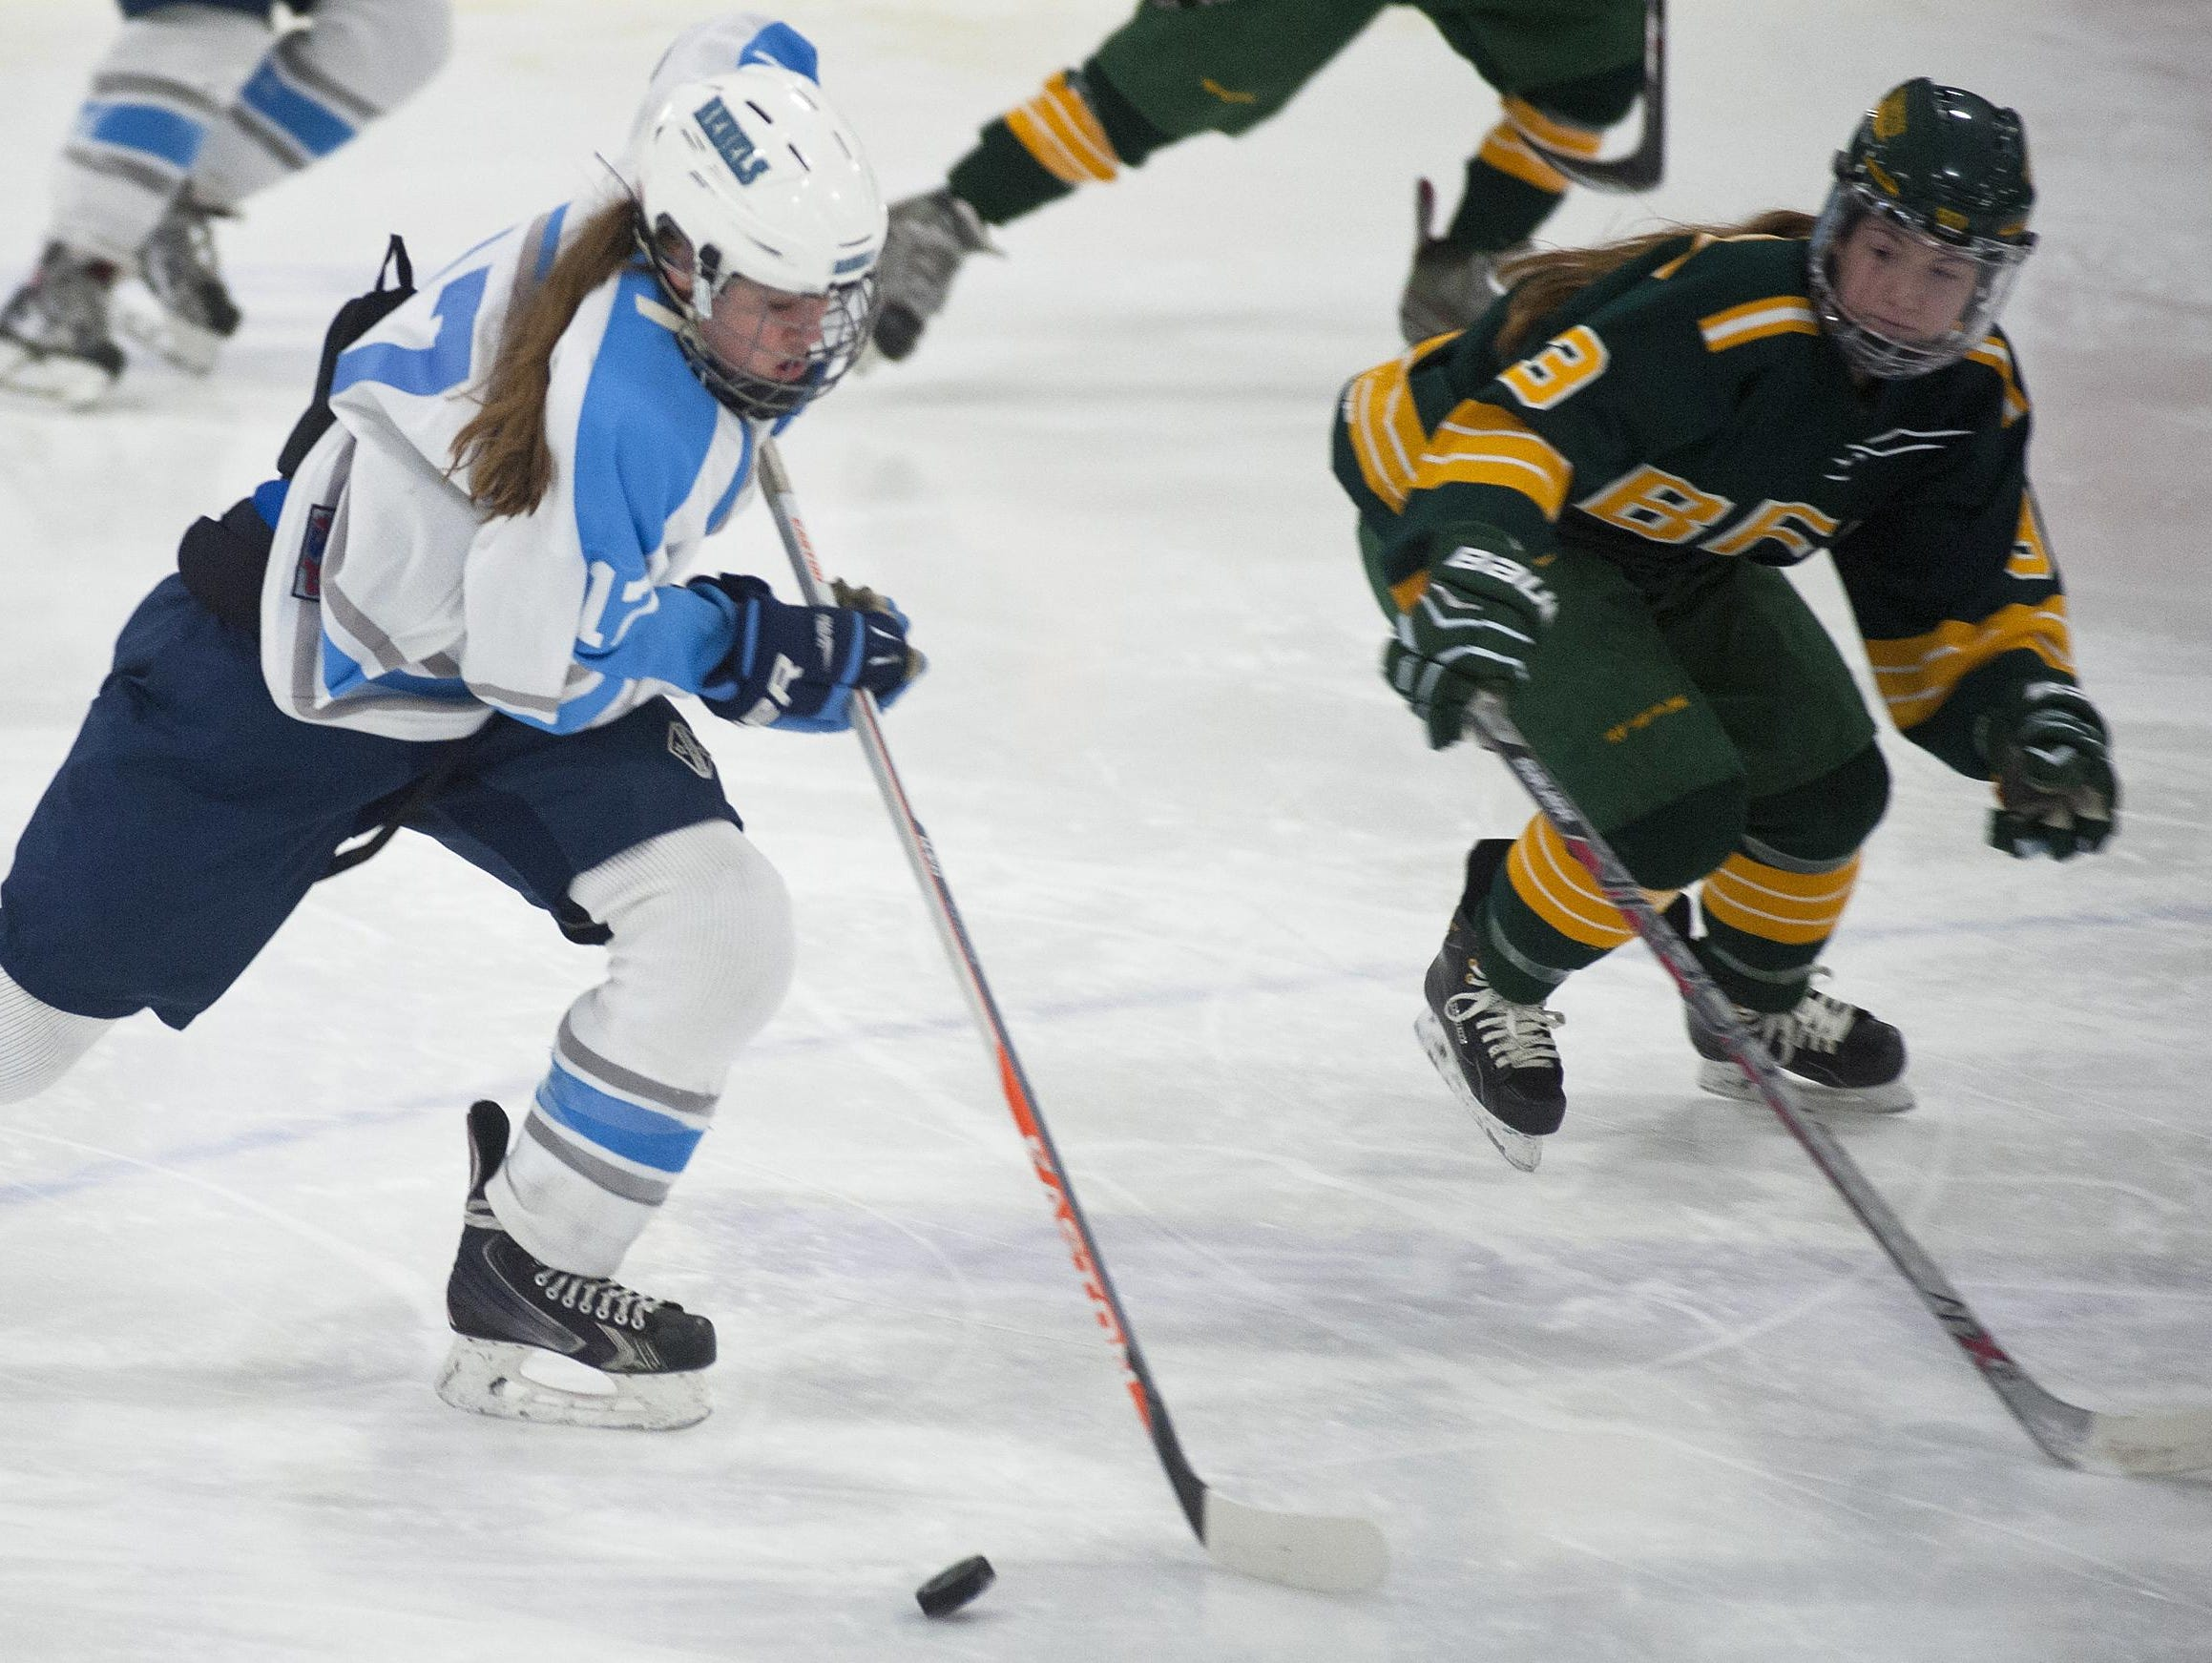 South Burlington's Katie Young, left, skates out of her zone past BFA-St. Albans' Riley Yandow during a game last season.